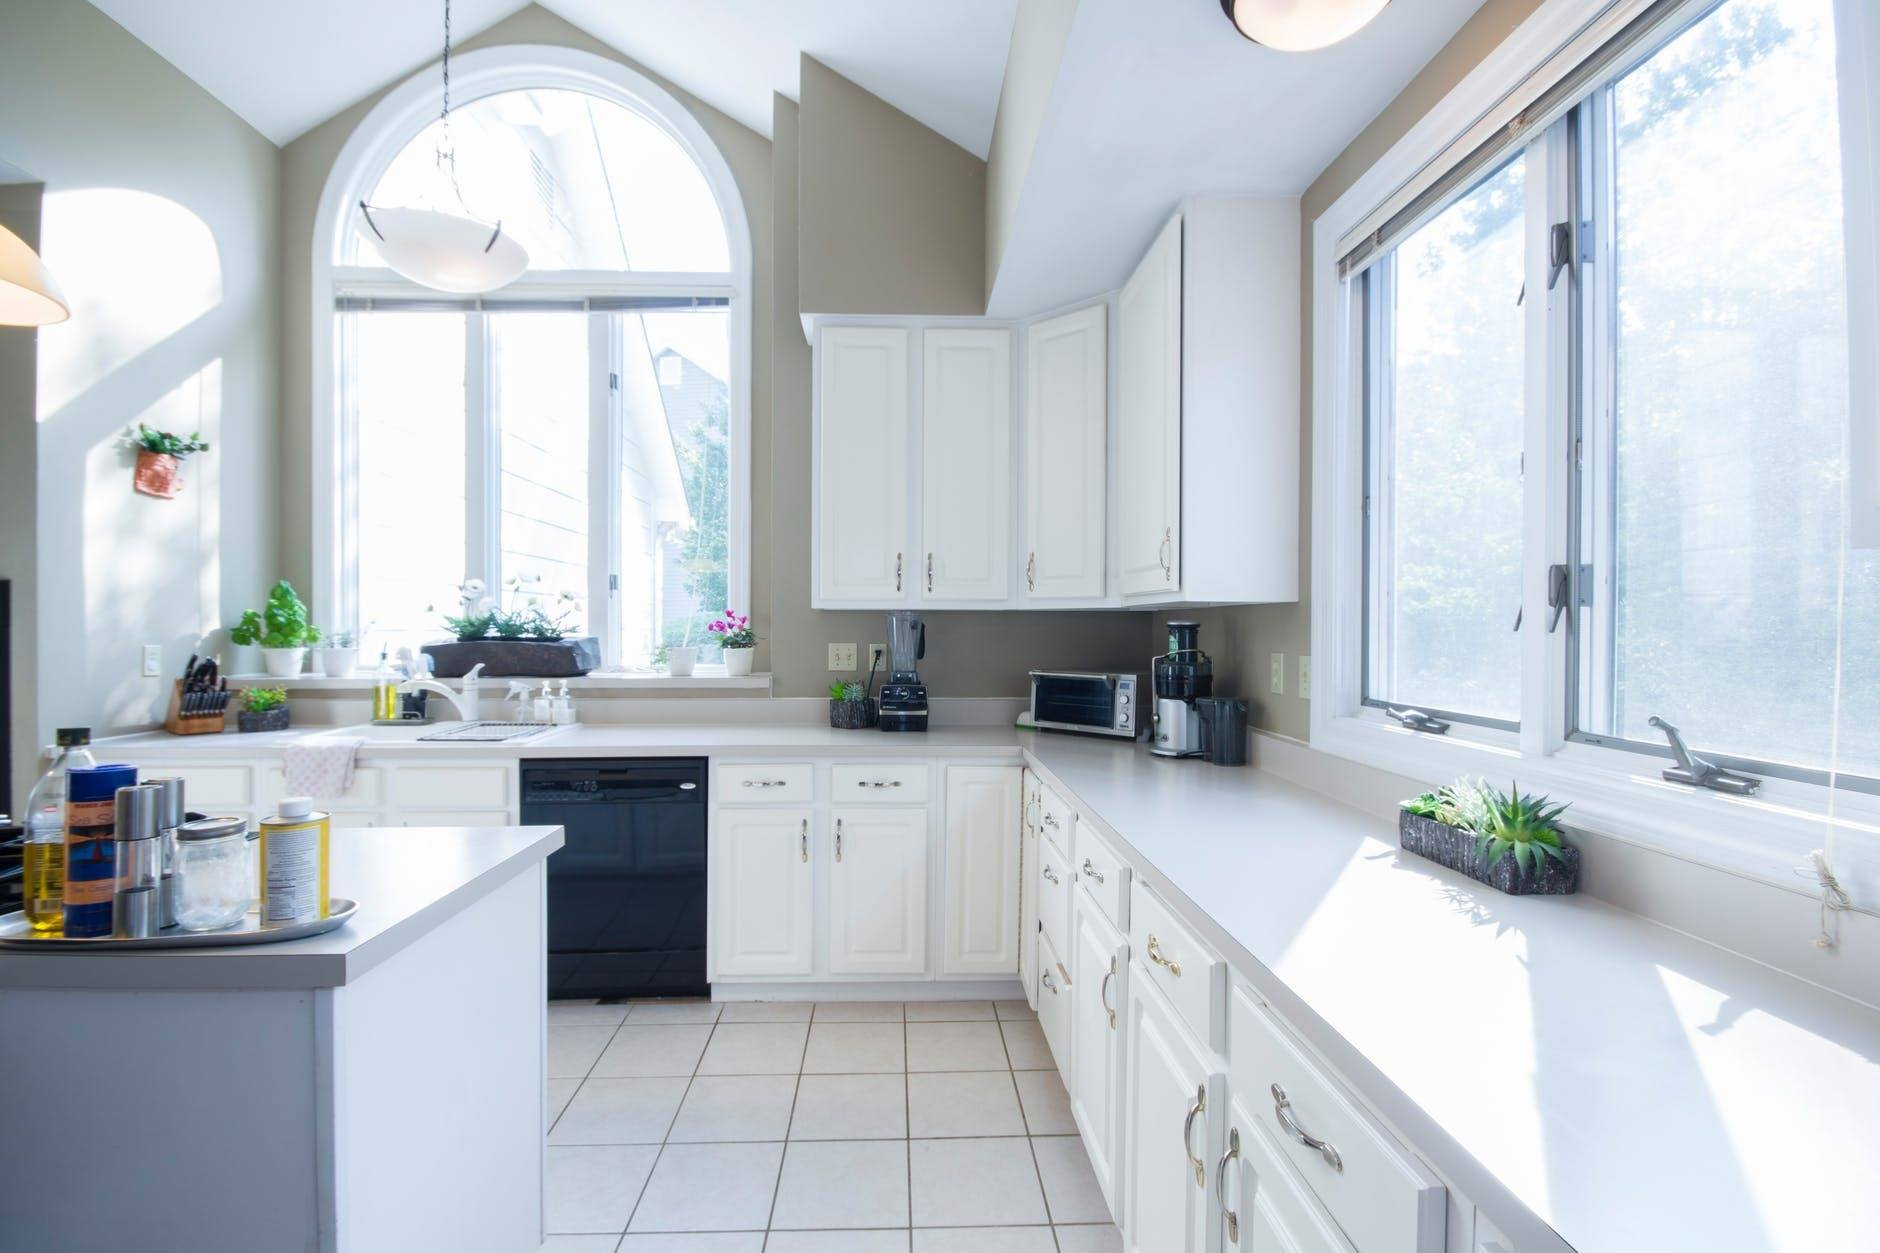 How To Decide On Your Kitchen Countertop Material ...